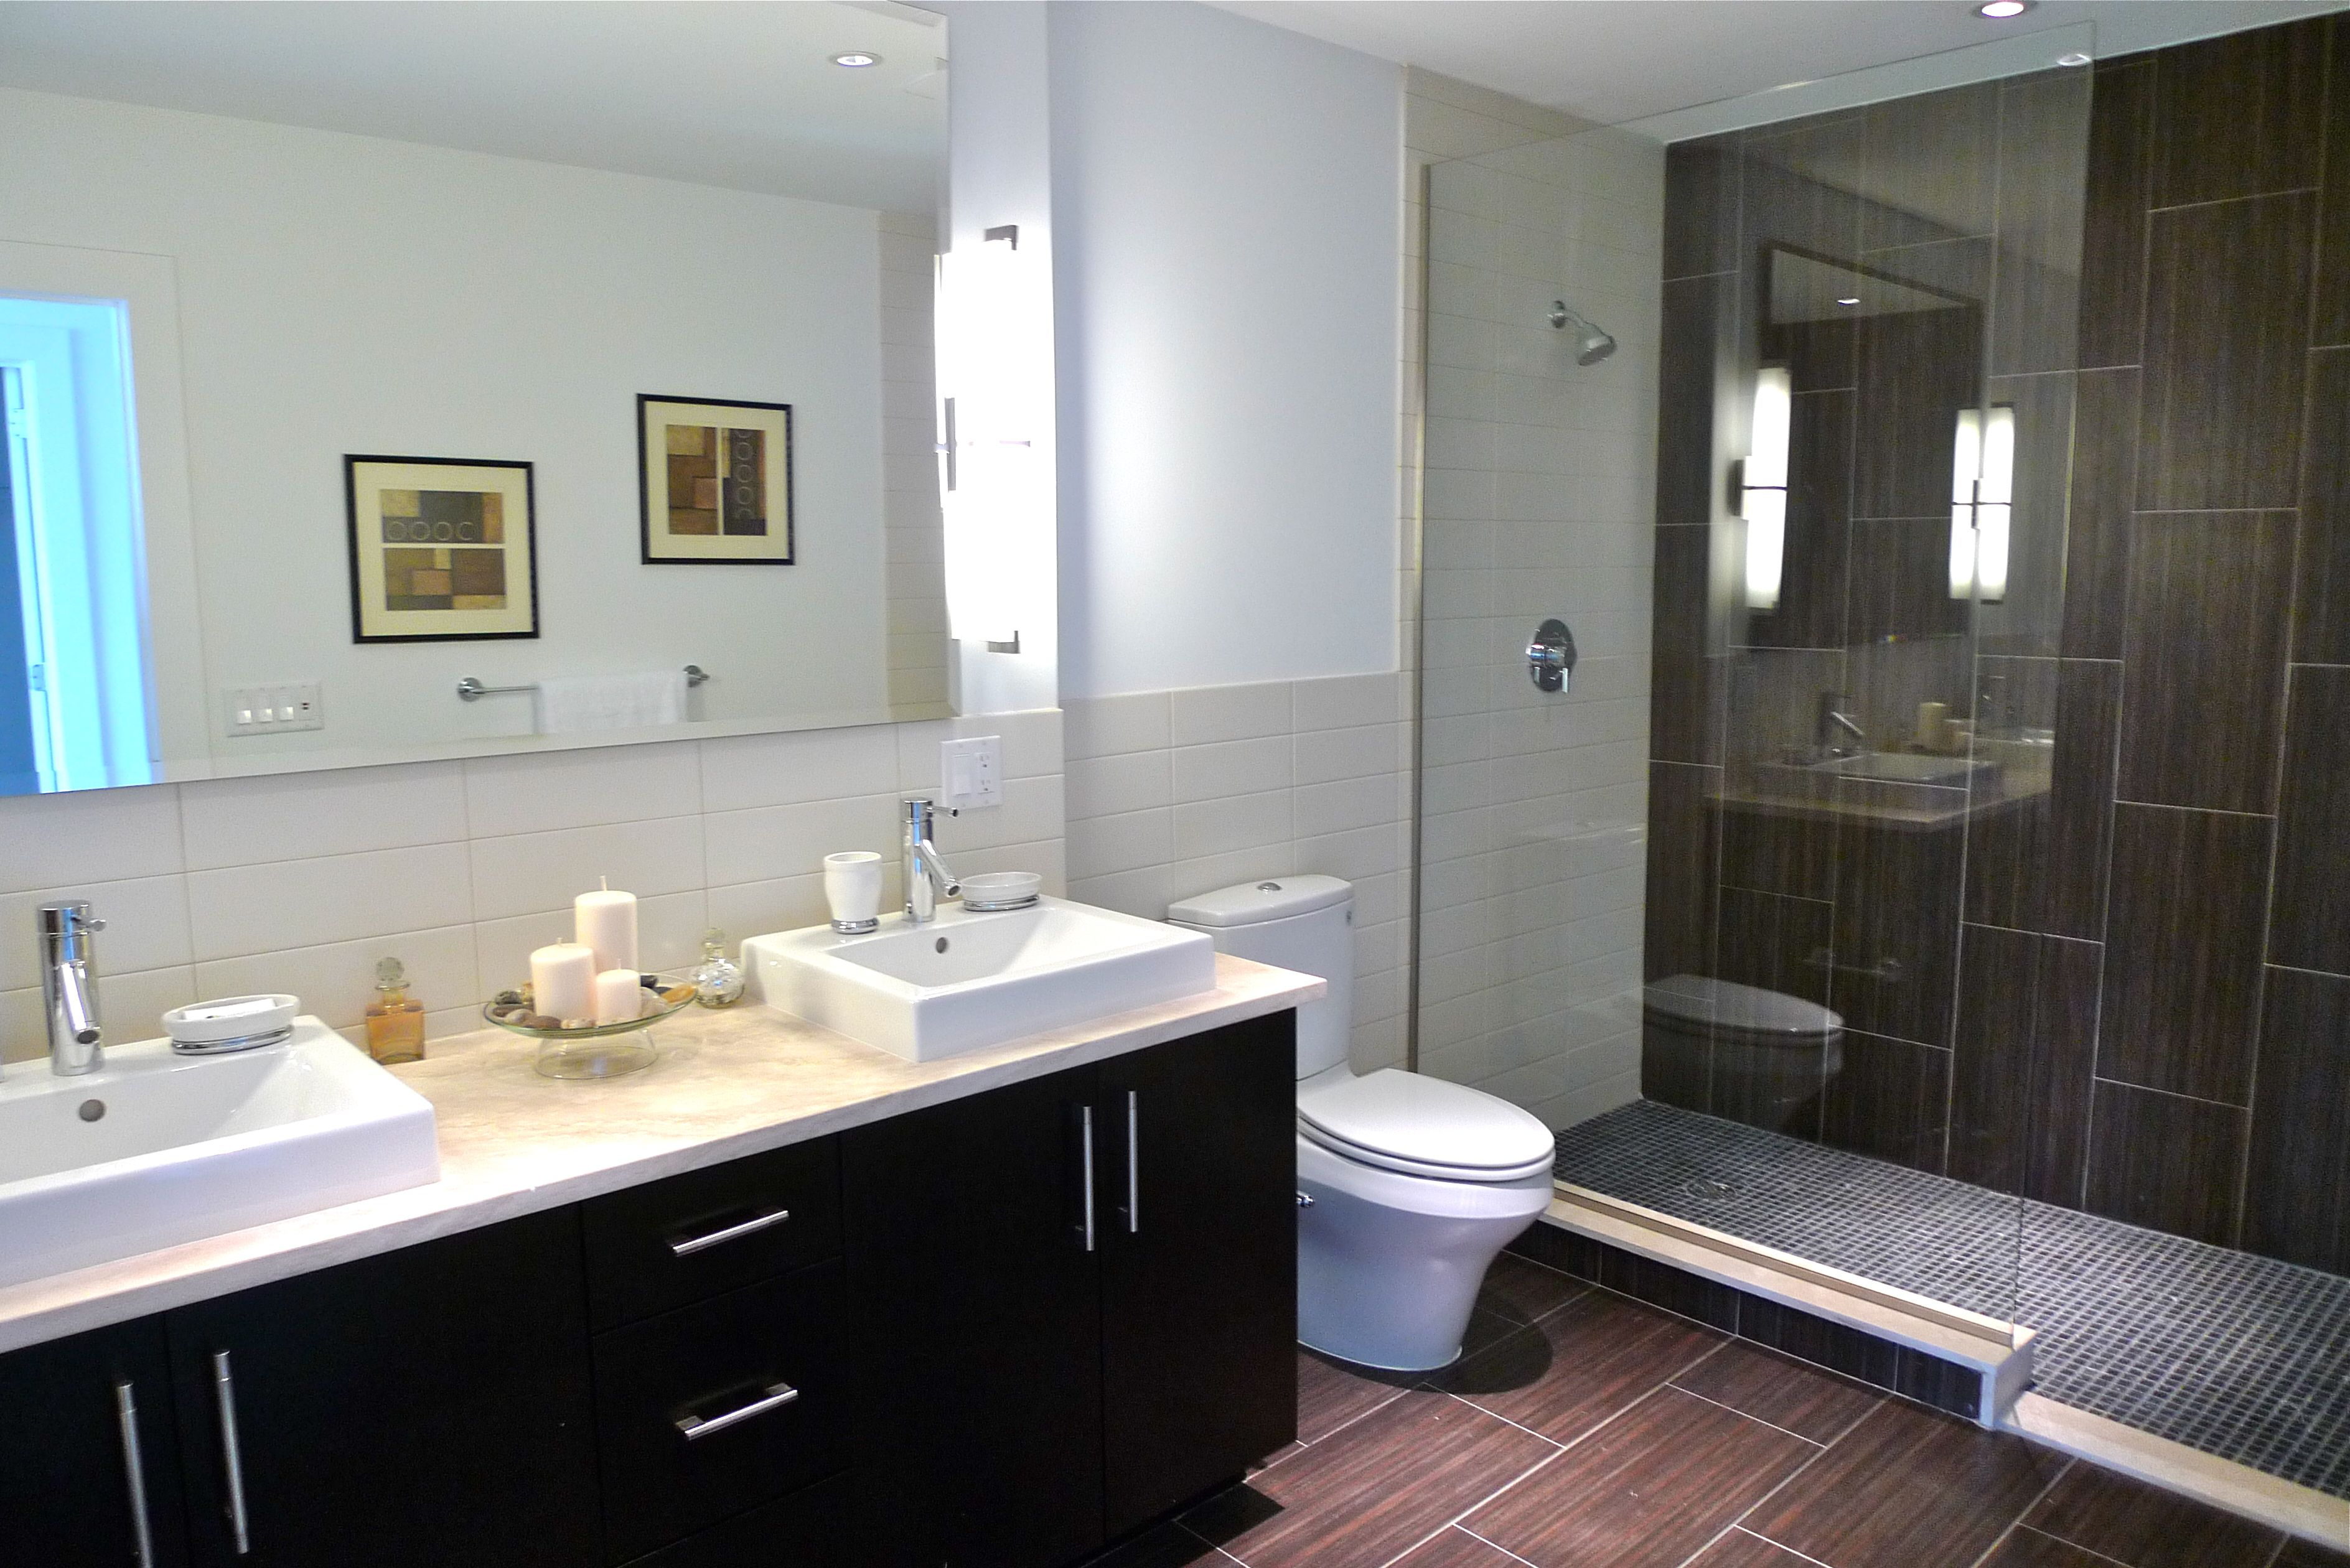 spa bathrooms pictures photo - 5